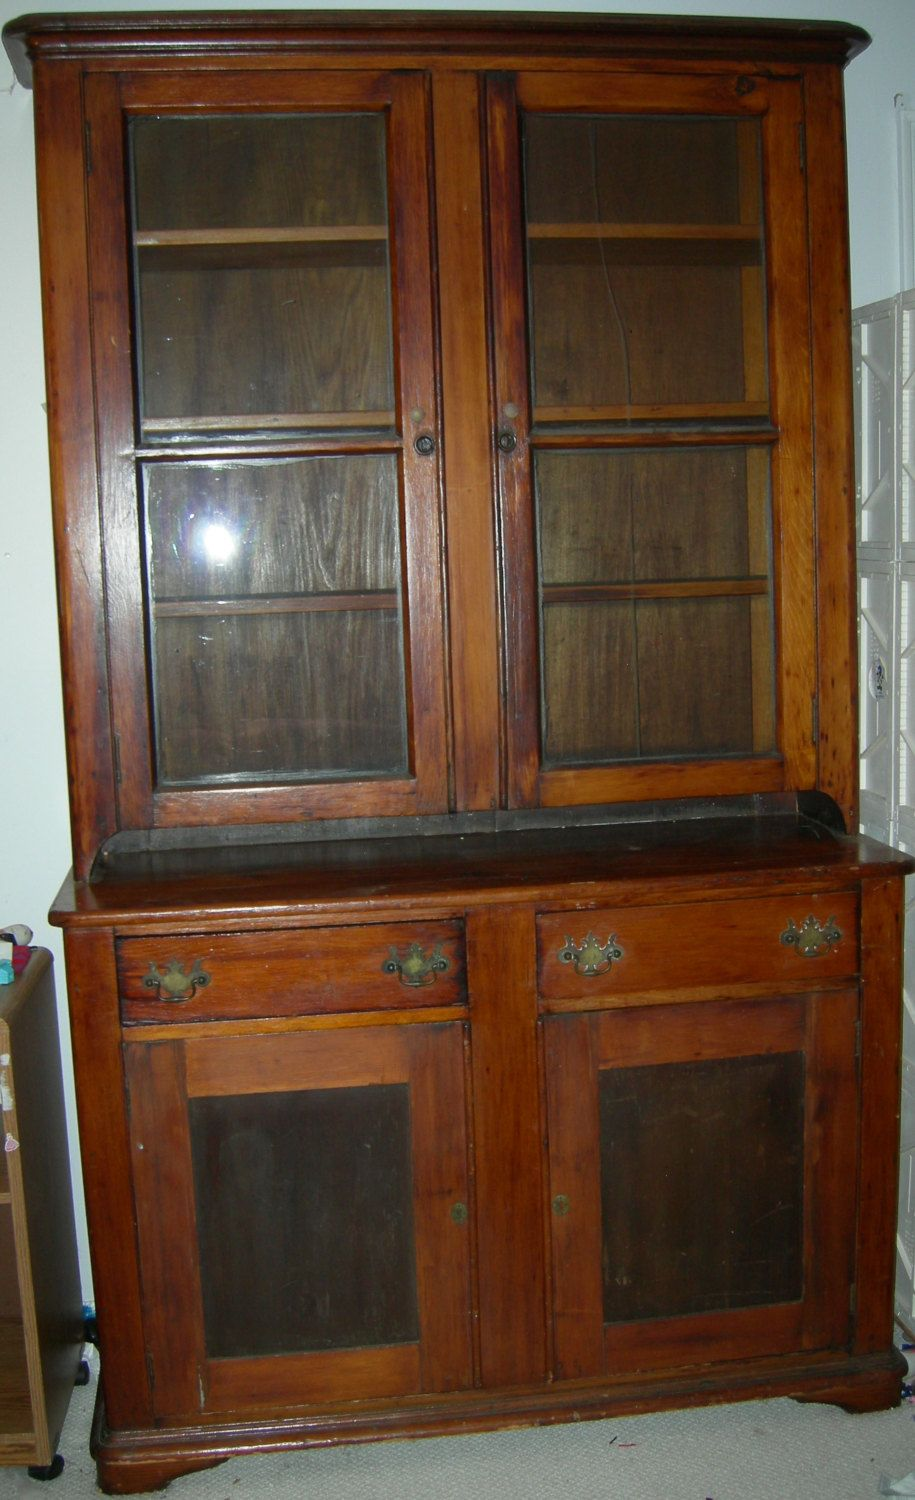 Antique stepback cupboard by antiquesplusmore on Etsy - Antique Stepback Cupboard By Antiquesplusmore On Etsy Gifts For